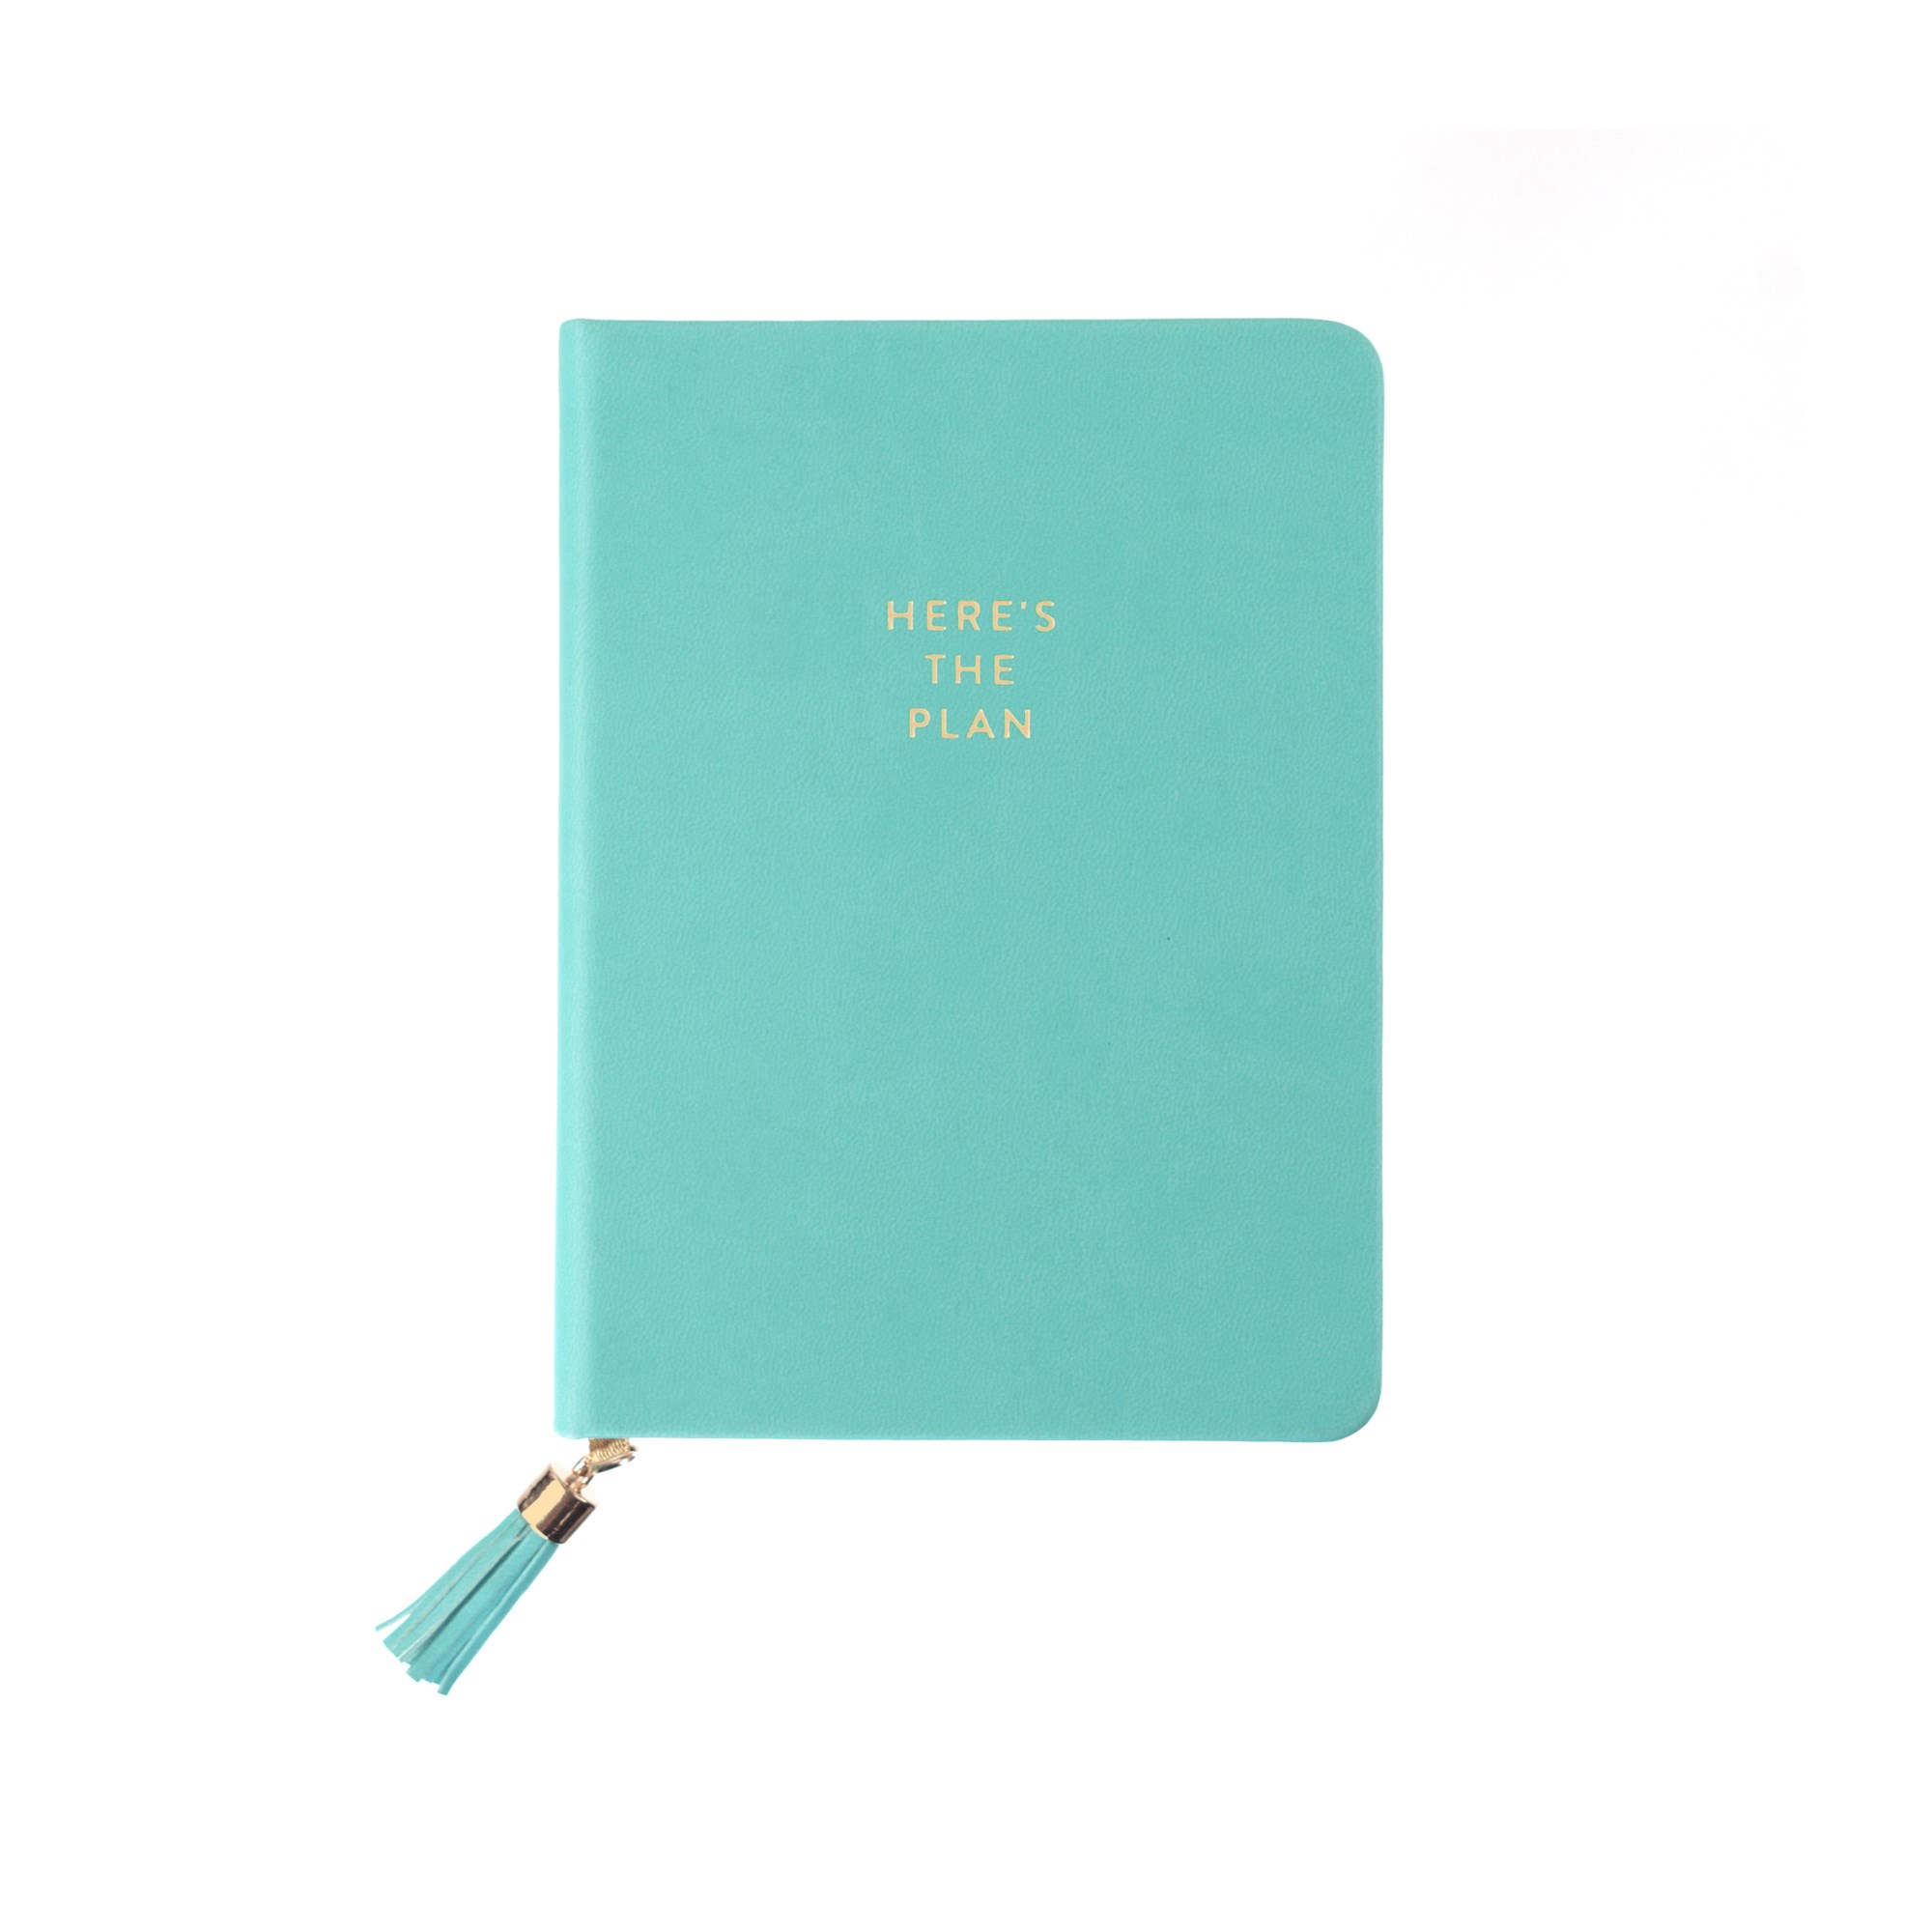 Tassel Journal: Seafoam Here's The Plan (D320b)